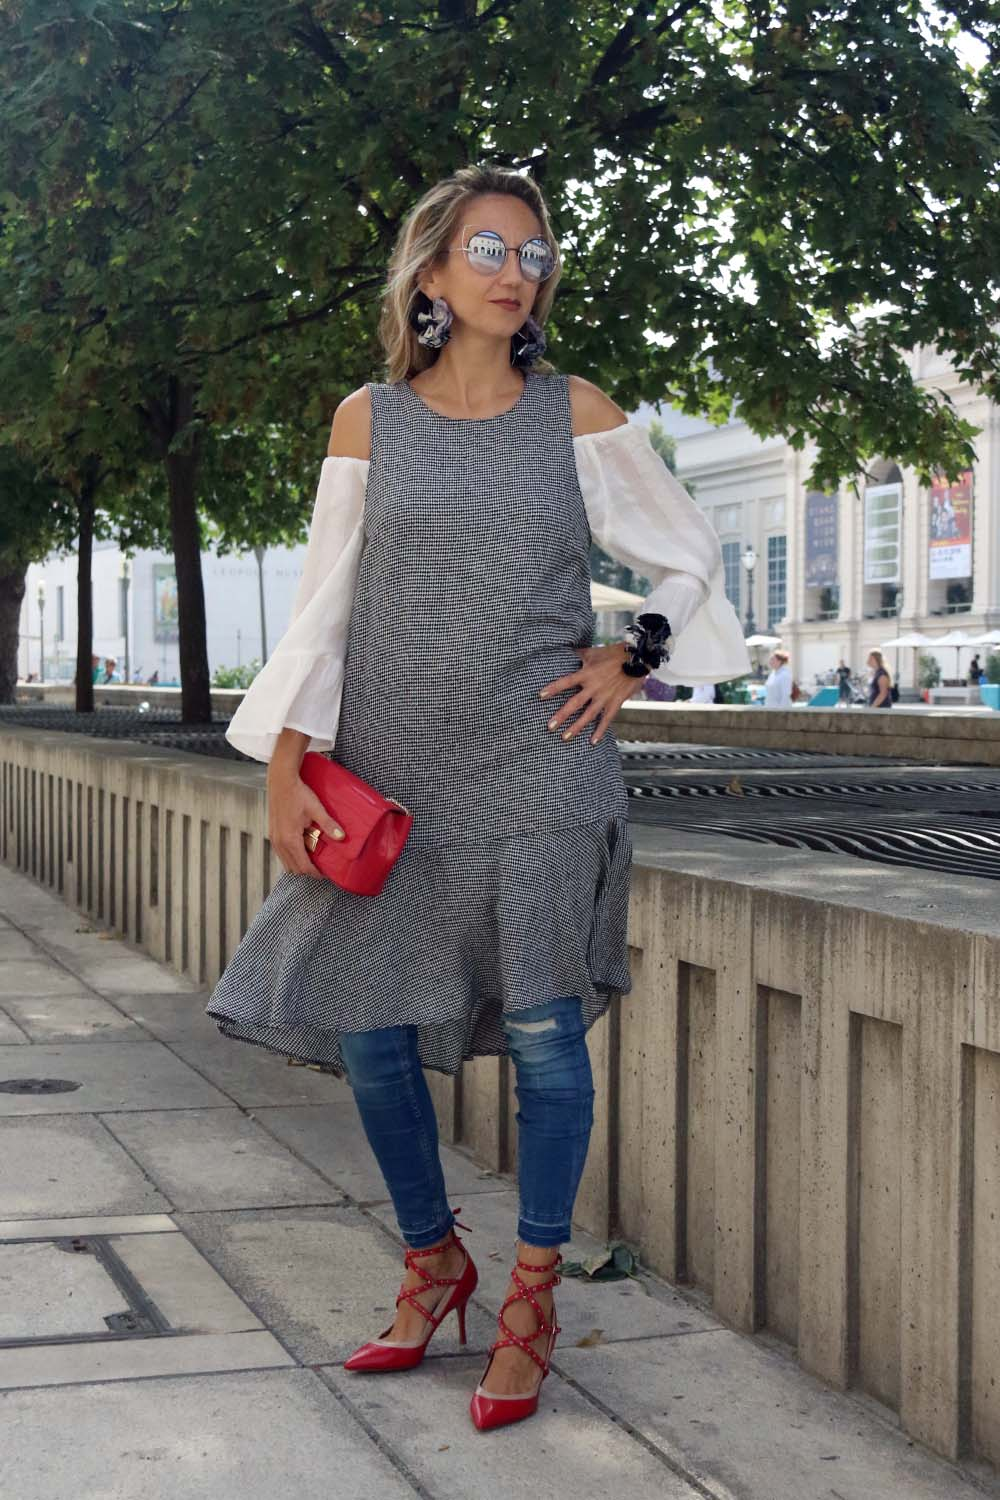 colourclub-fashion-blog-valentino-pumps-furla-bag-off-shoulder-top-outfit-skinny-jeans-lagenlook-marc-jacobs-sonnenbrille-ornaments-and-lor-jewelery9